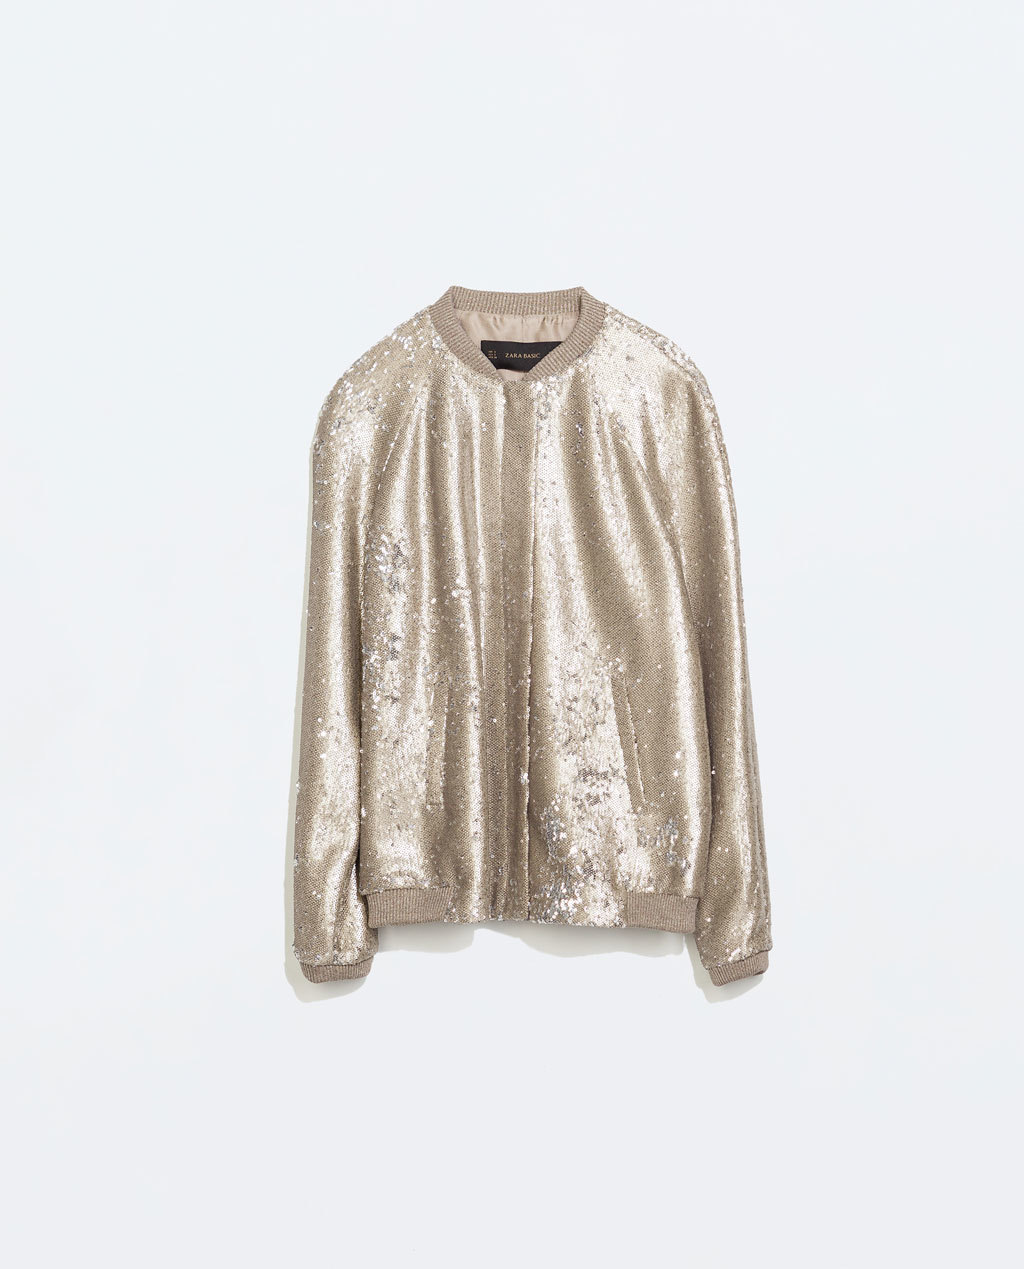 Mixed Knit Sequinned Bomber - pattern: plain; collar: round collar/collarless; style: bomber; predominant colour: gold; occasions: casual, evening; length: standard; fit: straight cut (boxy); fibres: polyester/polyamide - 100%; sleeve length: long sleeve; sleeve style: standard; collar break: high; pattern type: fabric; texture group: other - light to midweight; embellishment: sequins; trends: sixties, outerwear chic; season: a/w 2014